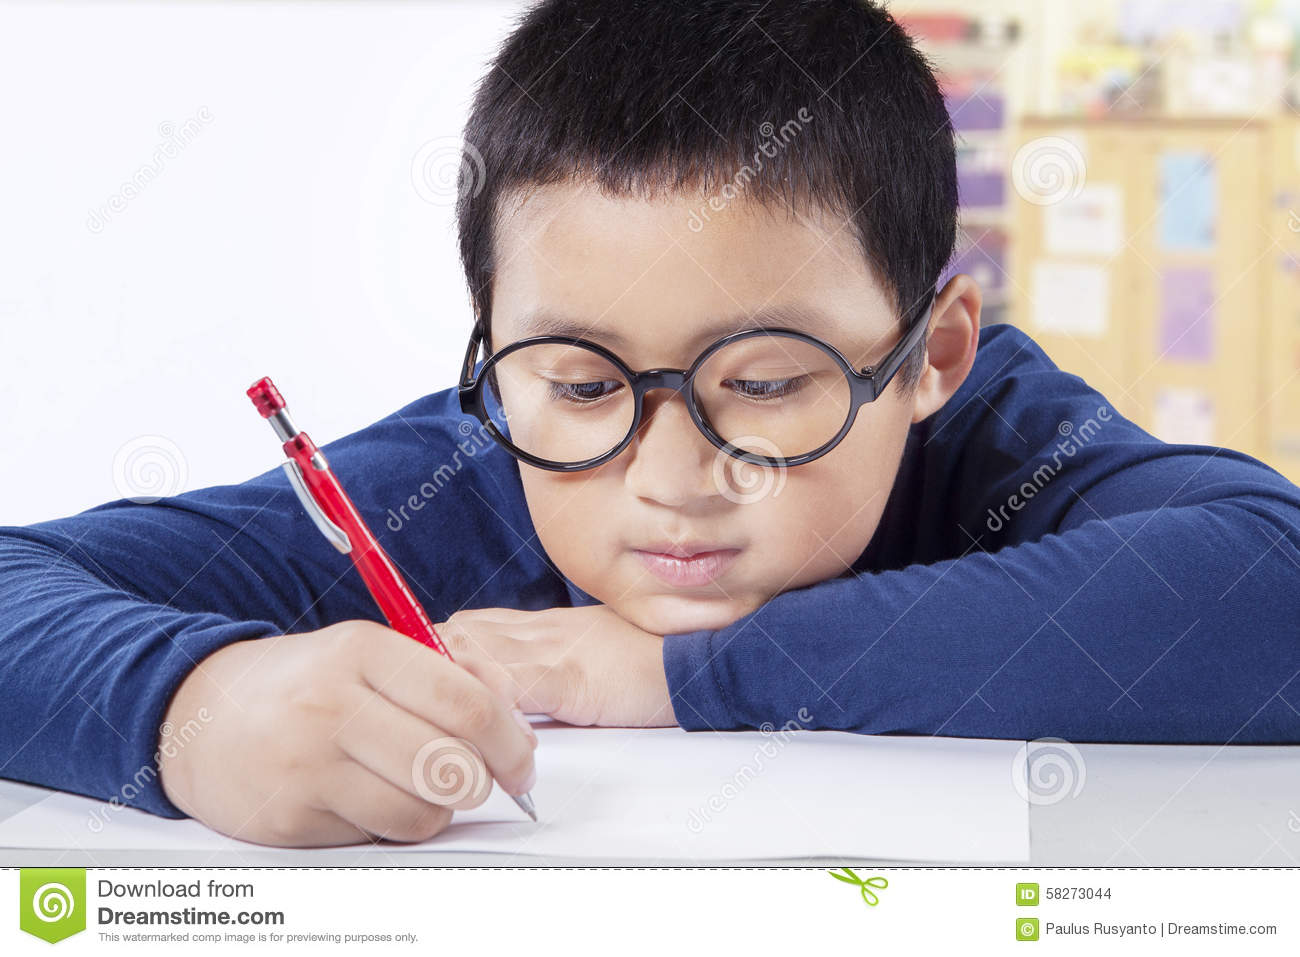 Causes of baby dumping essay